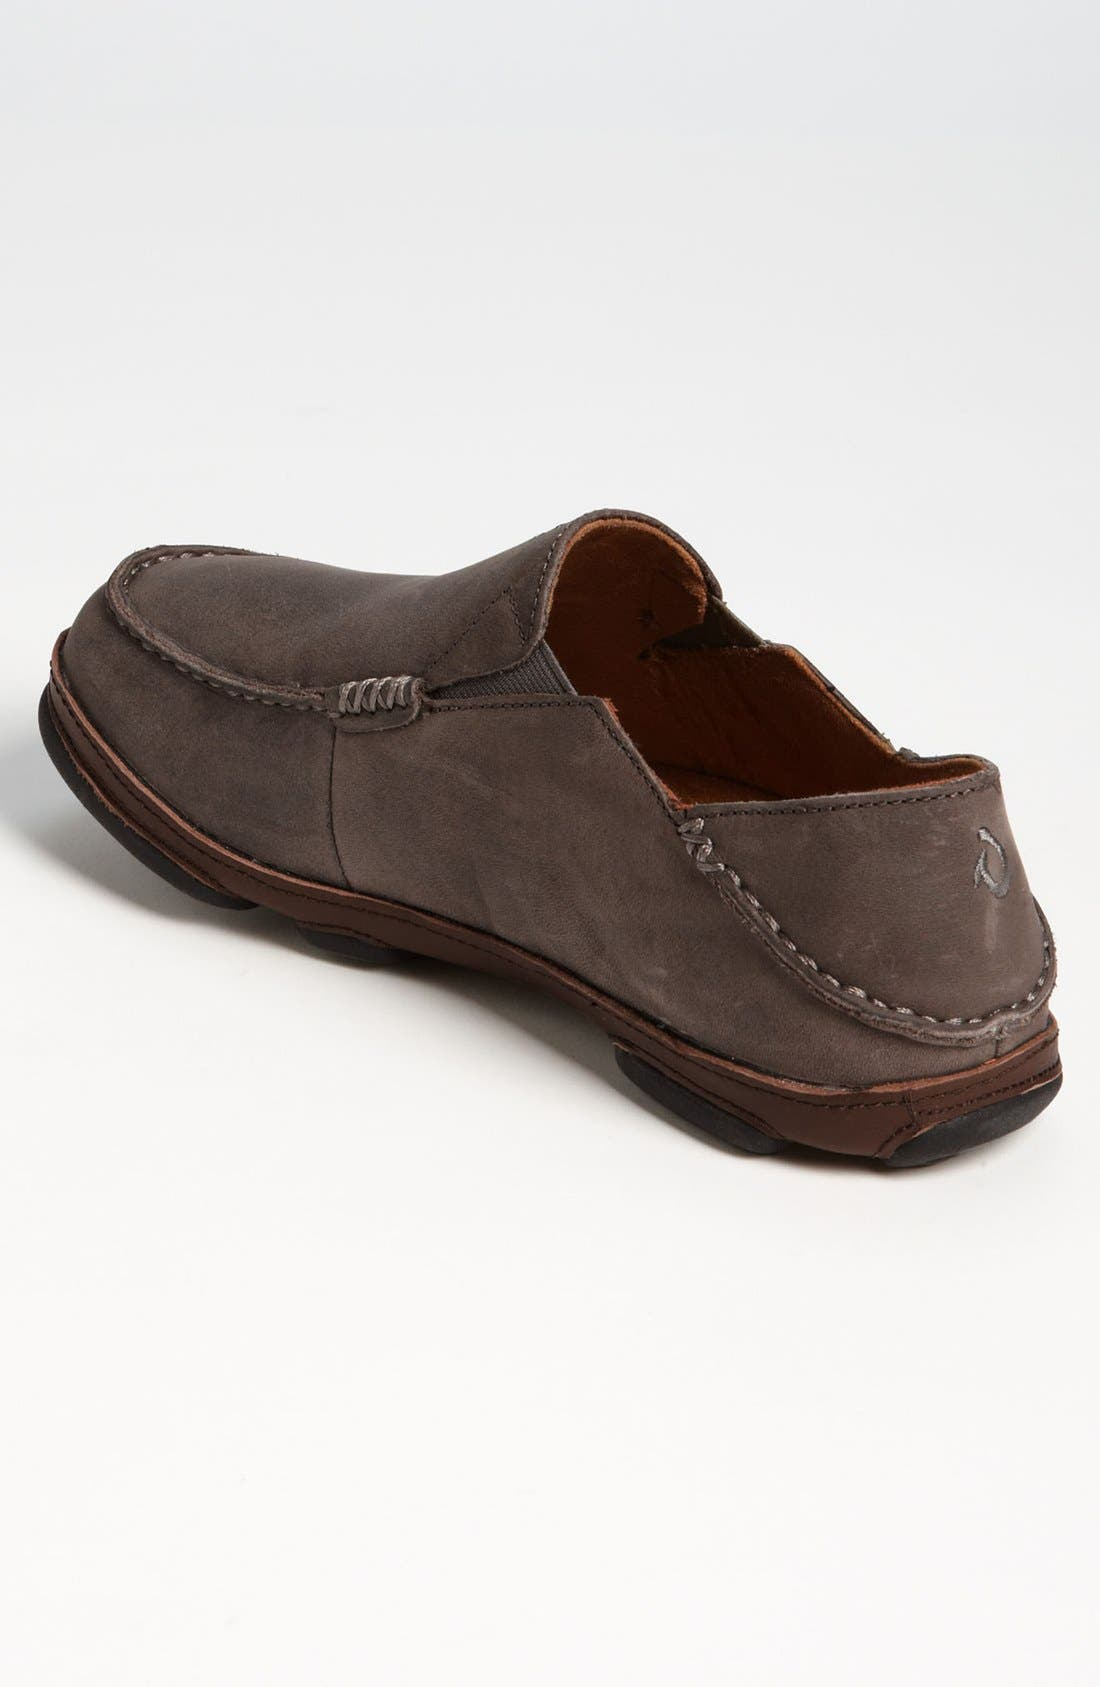 Moloa Slip-On,                             Alternate thumbnail 2, color,                             STORM GREY/ DARK WOOD